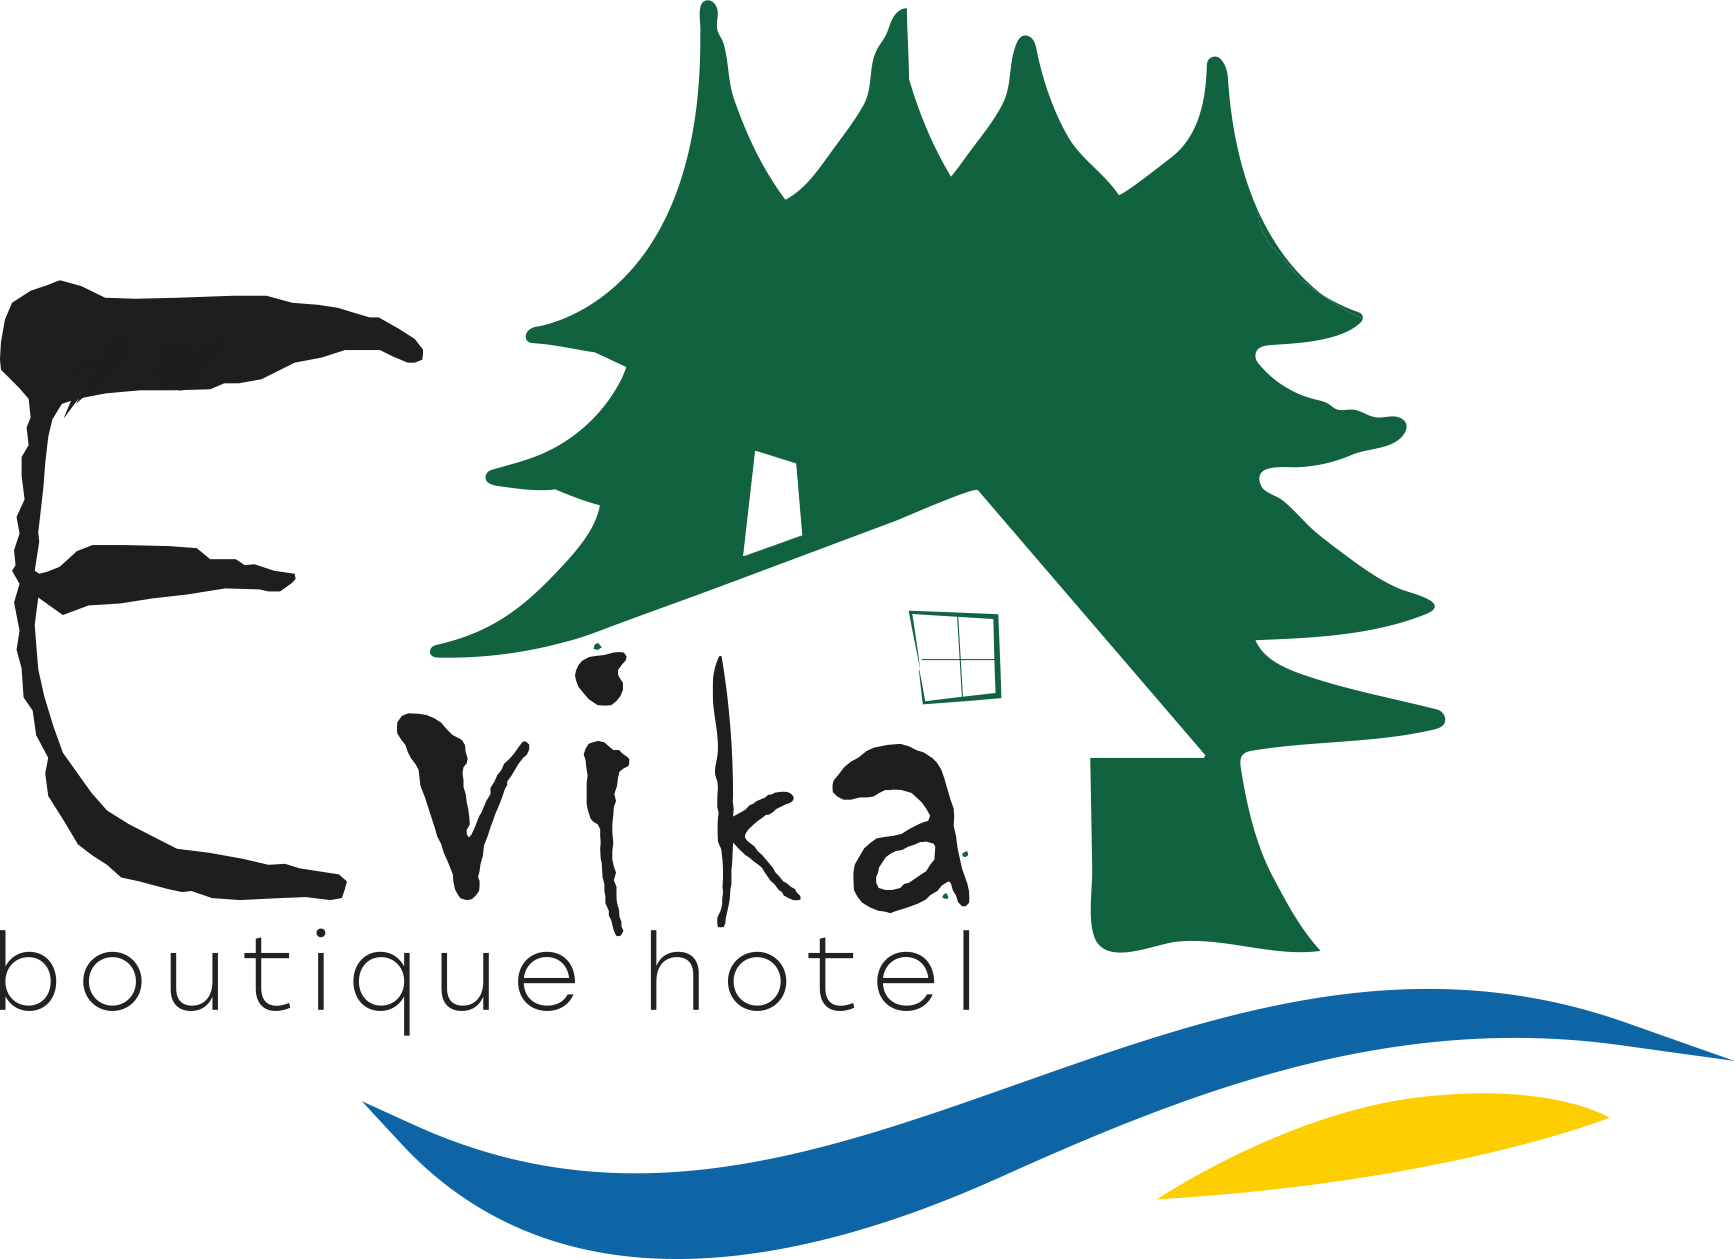 Evika boutique hotel